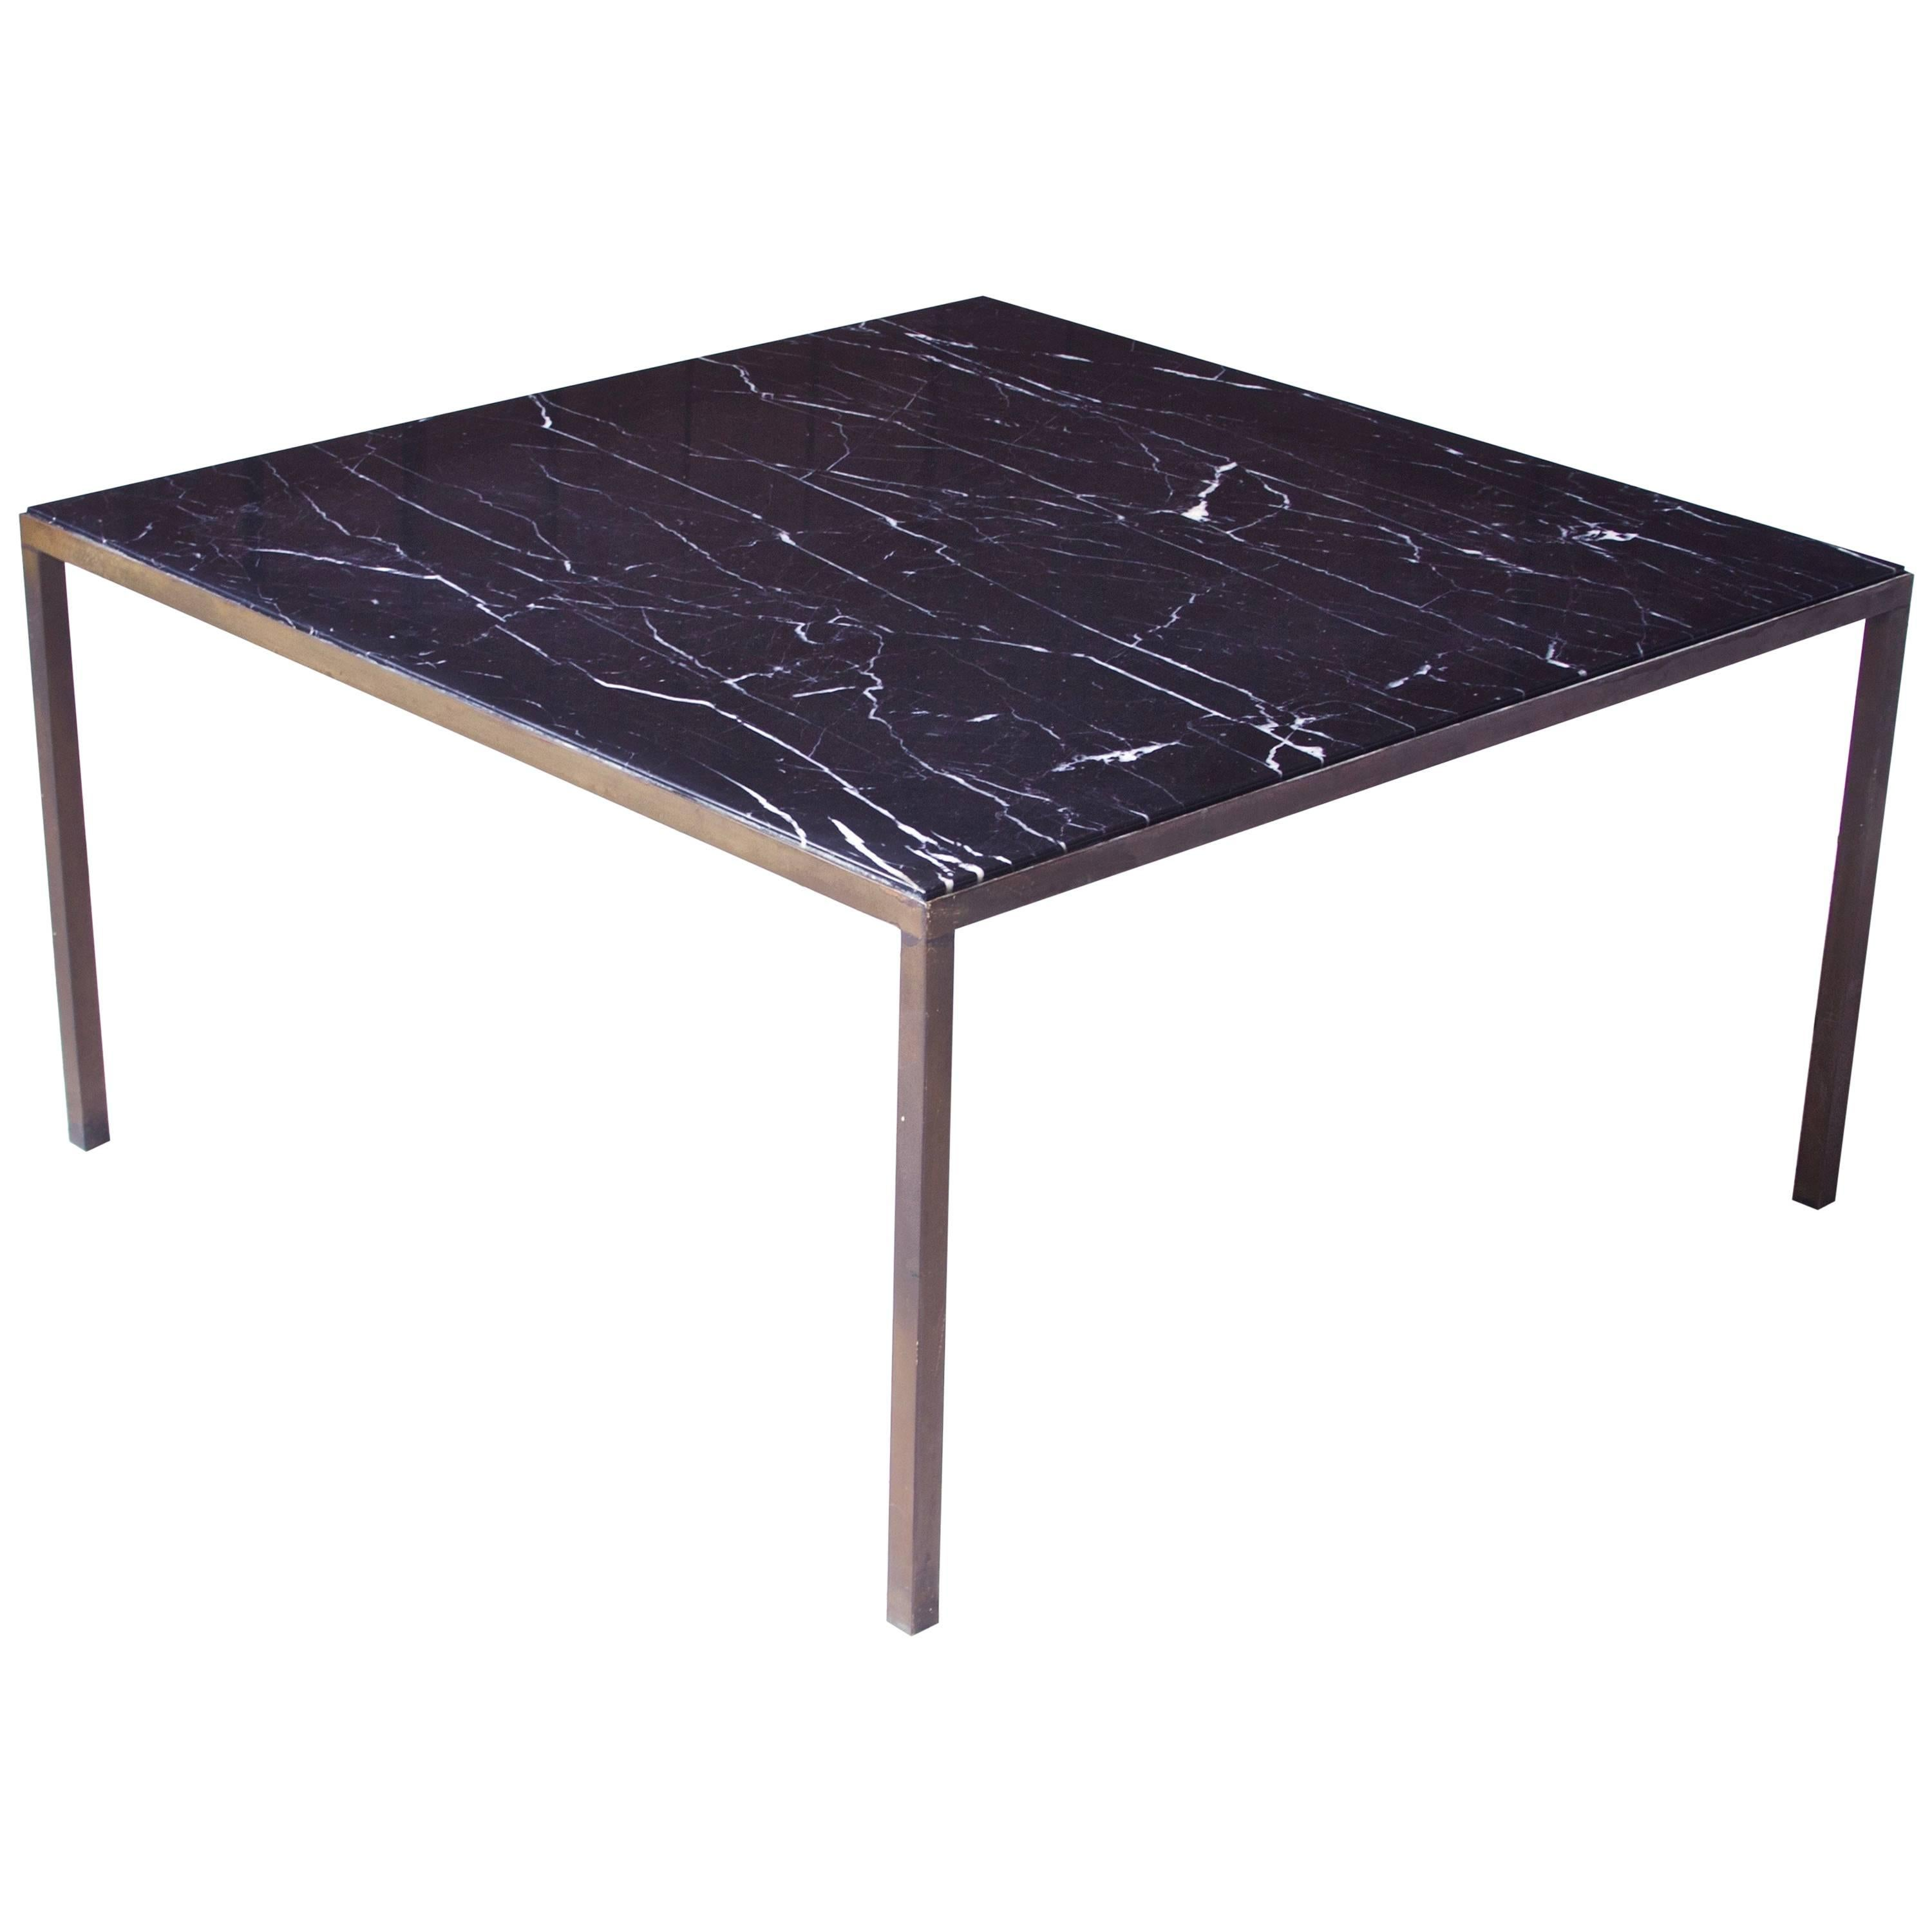 Vintage Italian Black  Marble and Bronze Square Coffee Table, 1970s